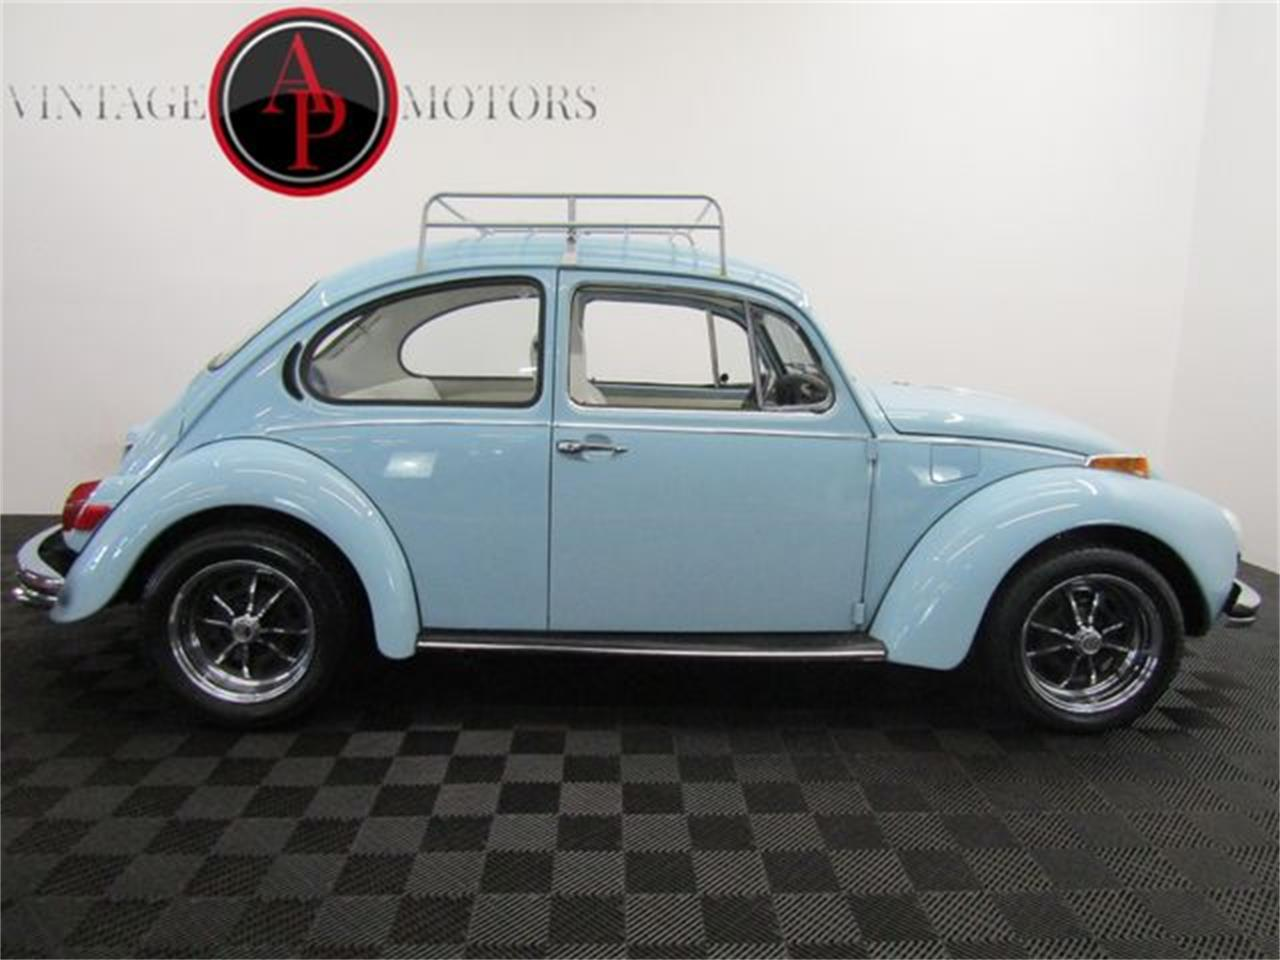 1972 Volkswagen Beetle for sale in Statesville, NC – photo 75